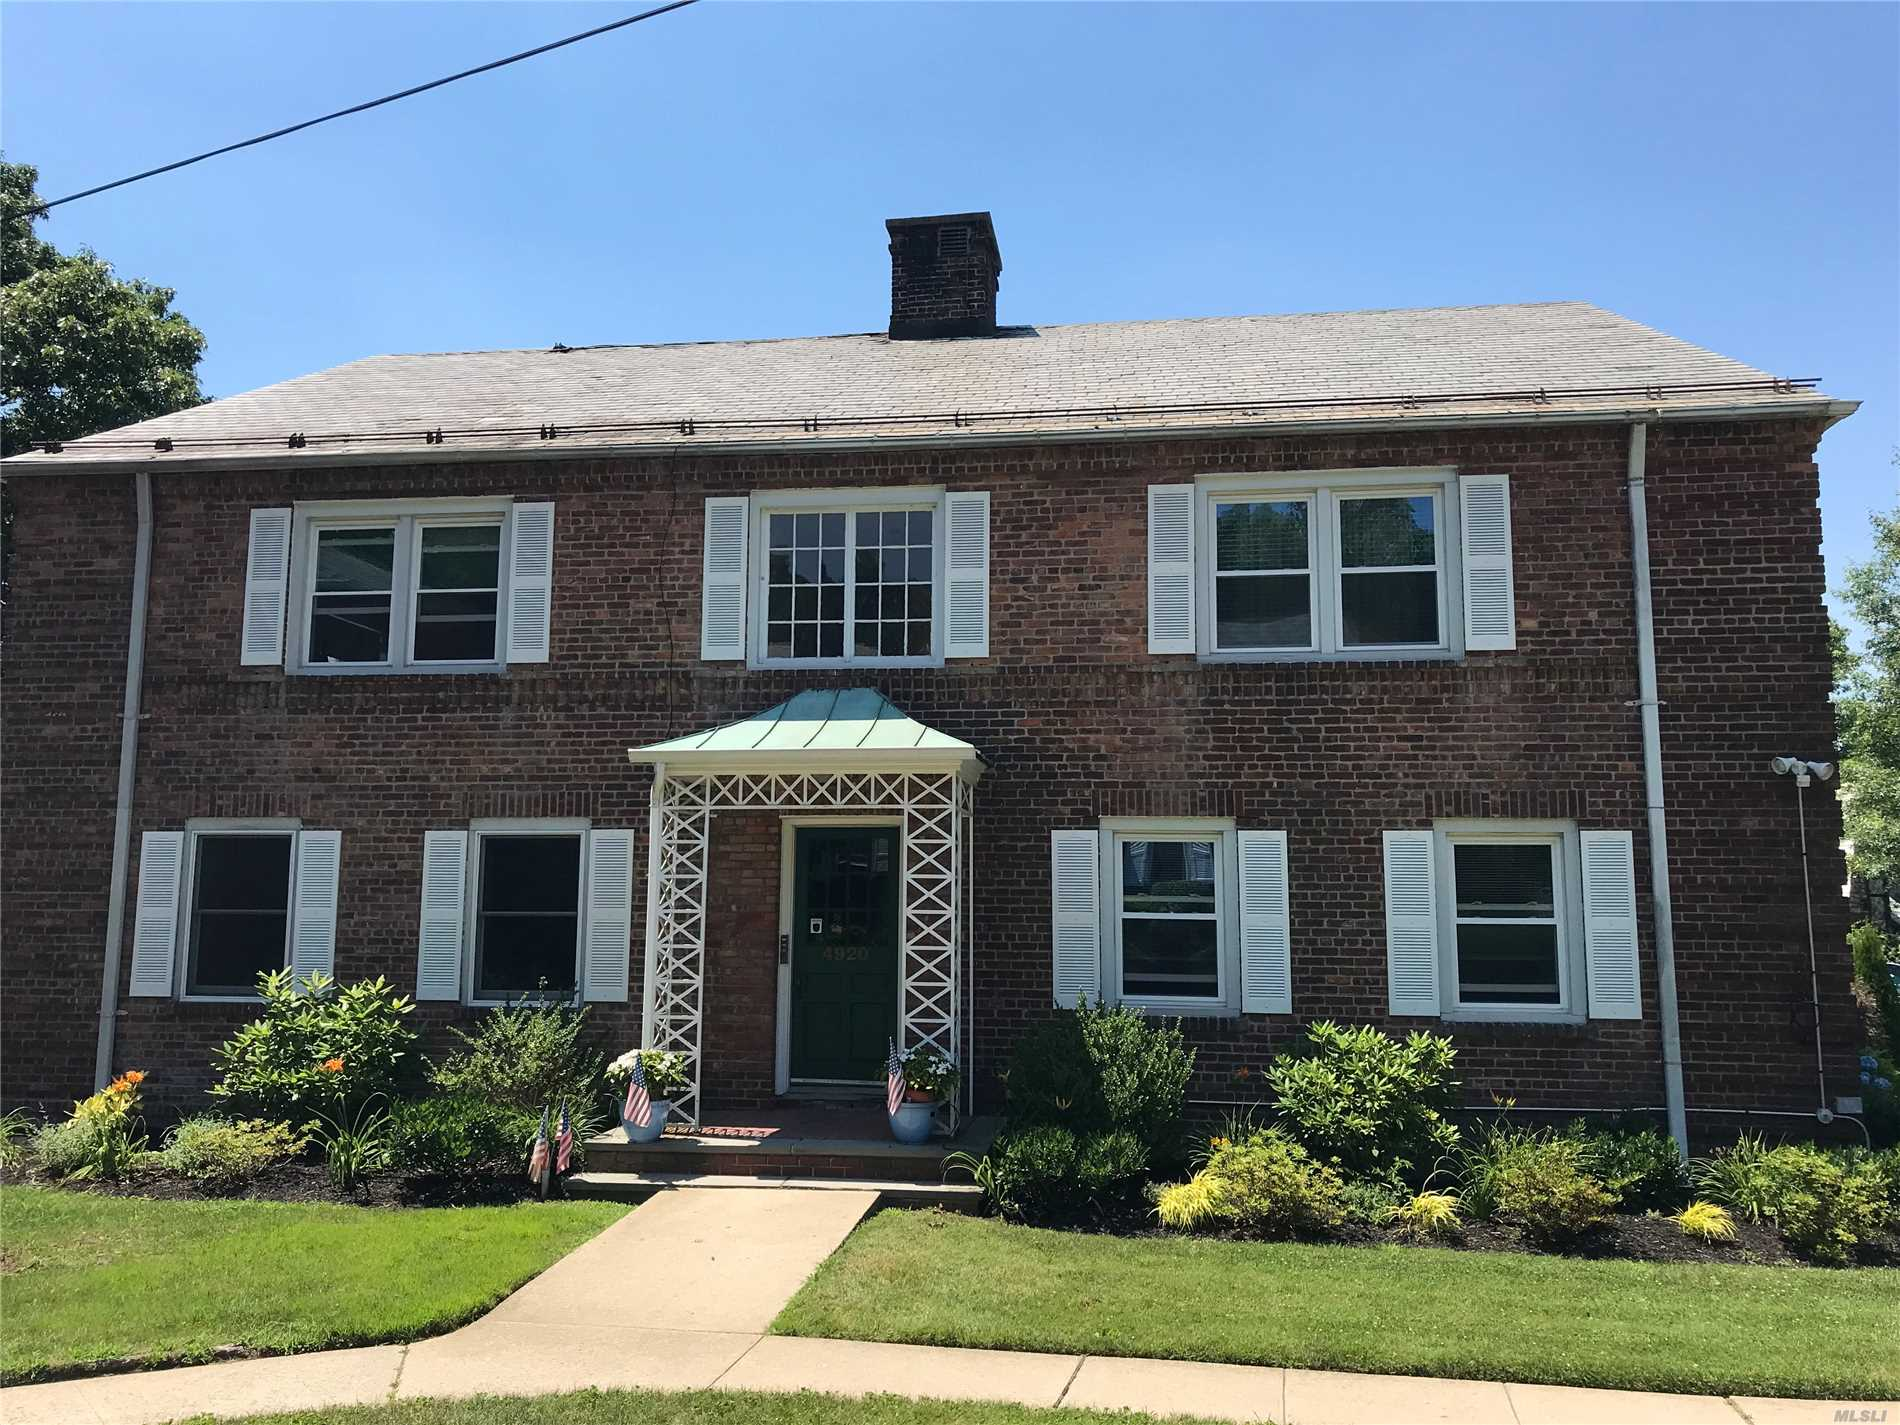 Prime For 1031 Year End Exchange..4 Car Parking Pad.....Fantastic, Legal Four Family. Backing On Environmental Land. .Accessible To L.I.E, Lirr, Northern Blvd. Buses, Shopping And Markets. Large Two Br's. 2100 Sf Basement, 7' 10 Ceiling Height. Free Market Rents! Ideal Long Term Addition To Any Investment Portfolio!